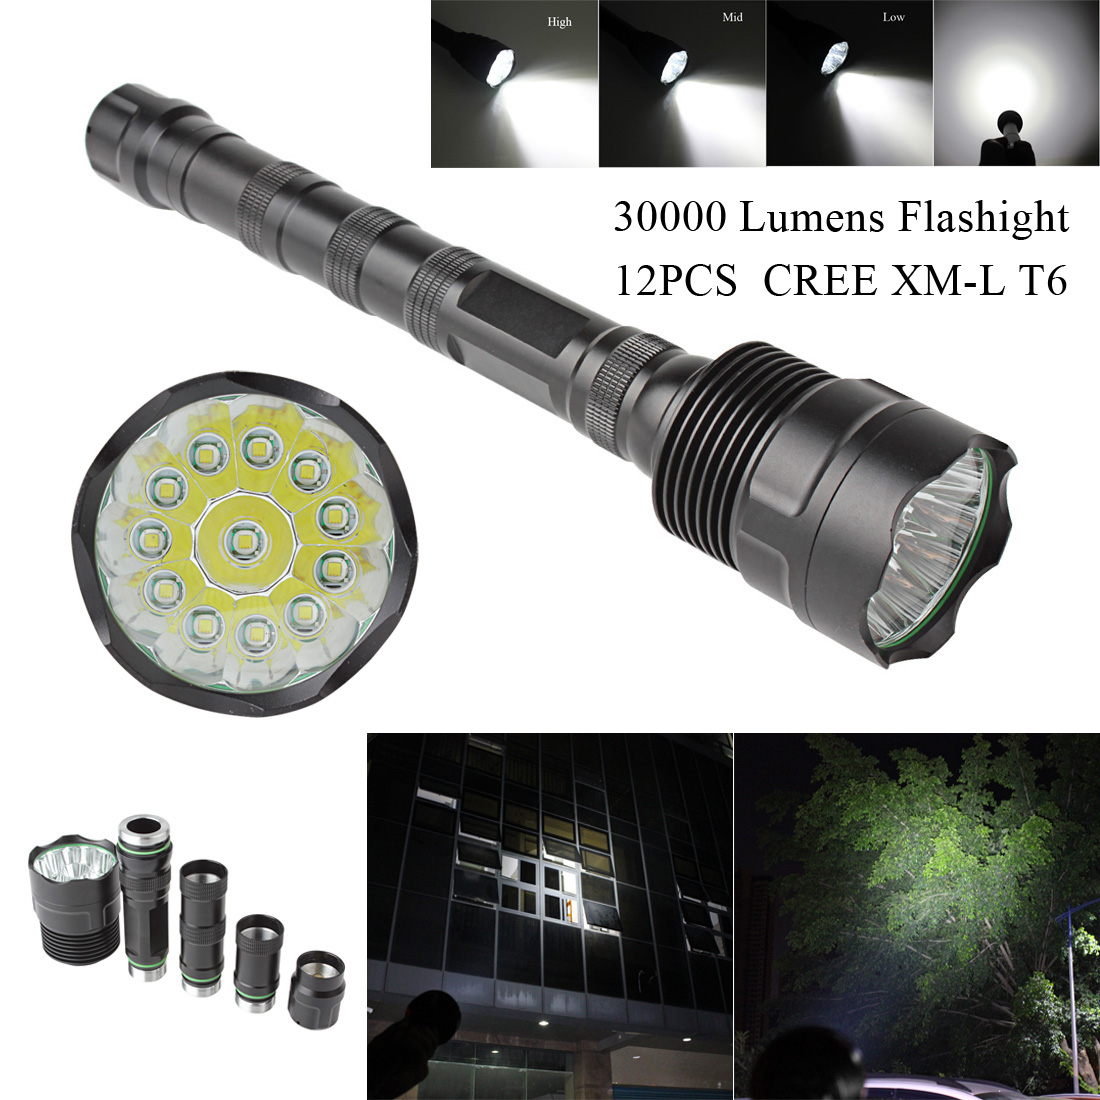 LED Flashlight 30000 Lumens Torch Lamp 5 Modes 8-12 CREE XM-L LED T6 Light for Homehold&Outdoor Camping Lantern Hunting aomway 700tvl hd 1 3 cmos fpv camera pal